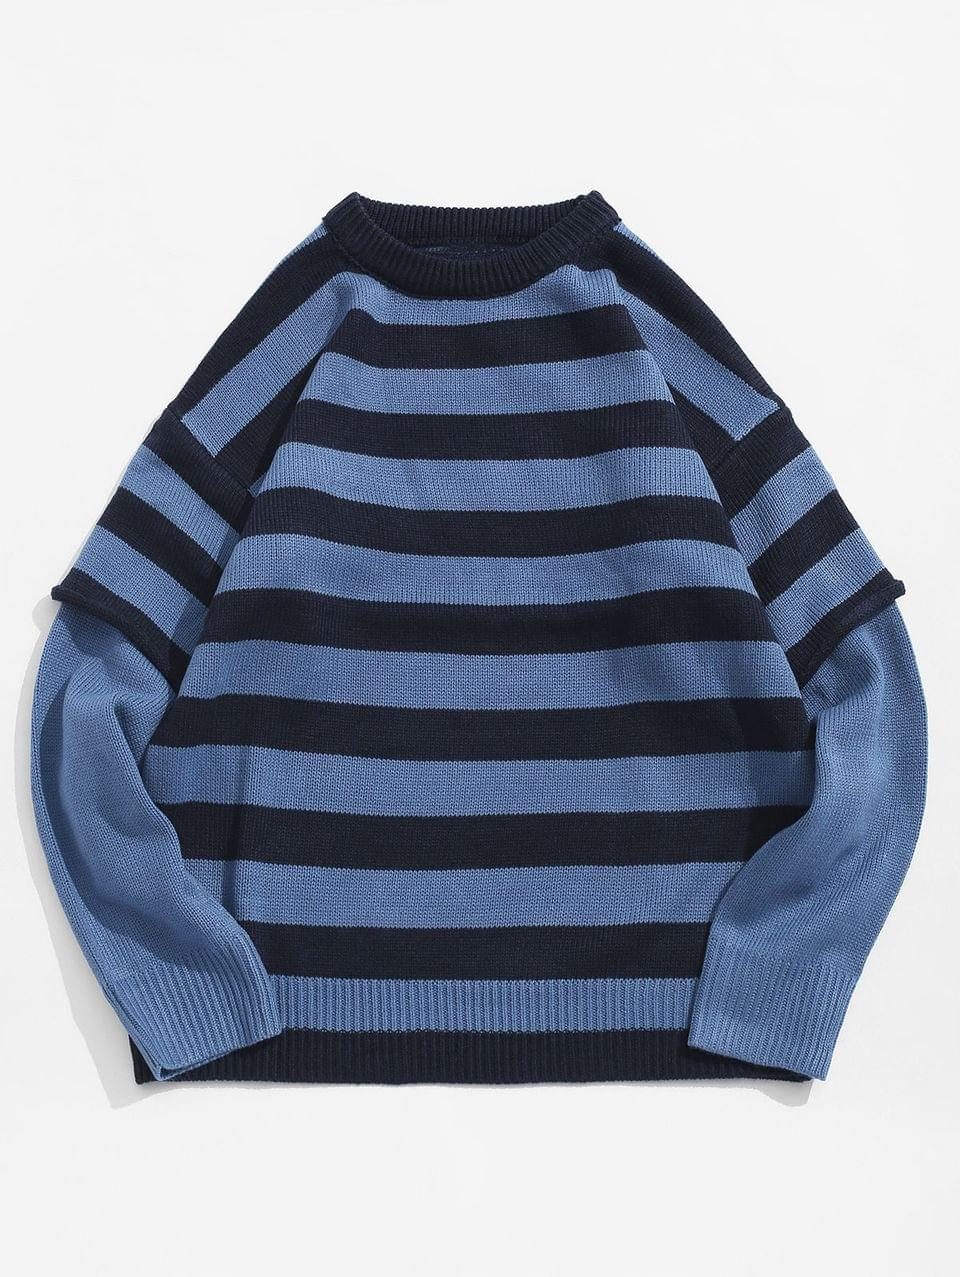 Men's Color Spliced Striped Pattern Round Neck Sweater - Blue Xl